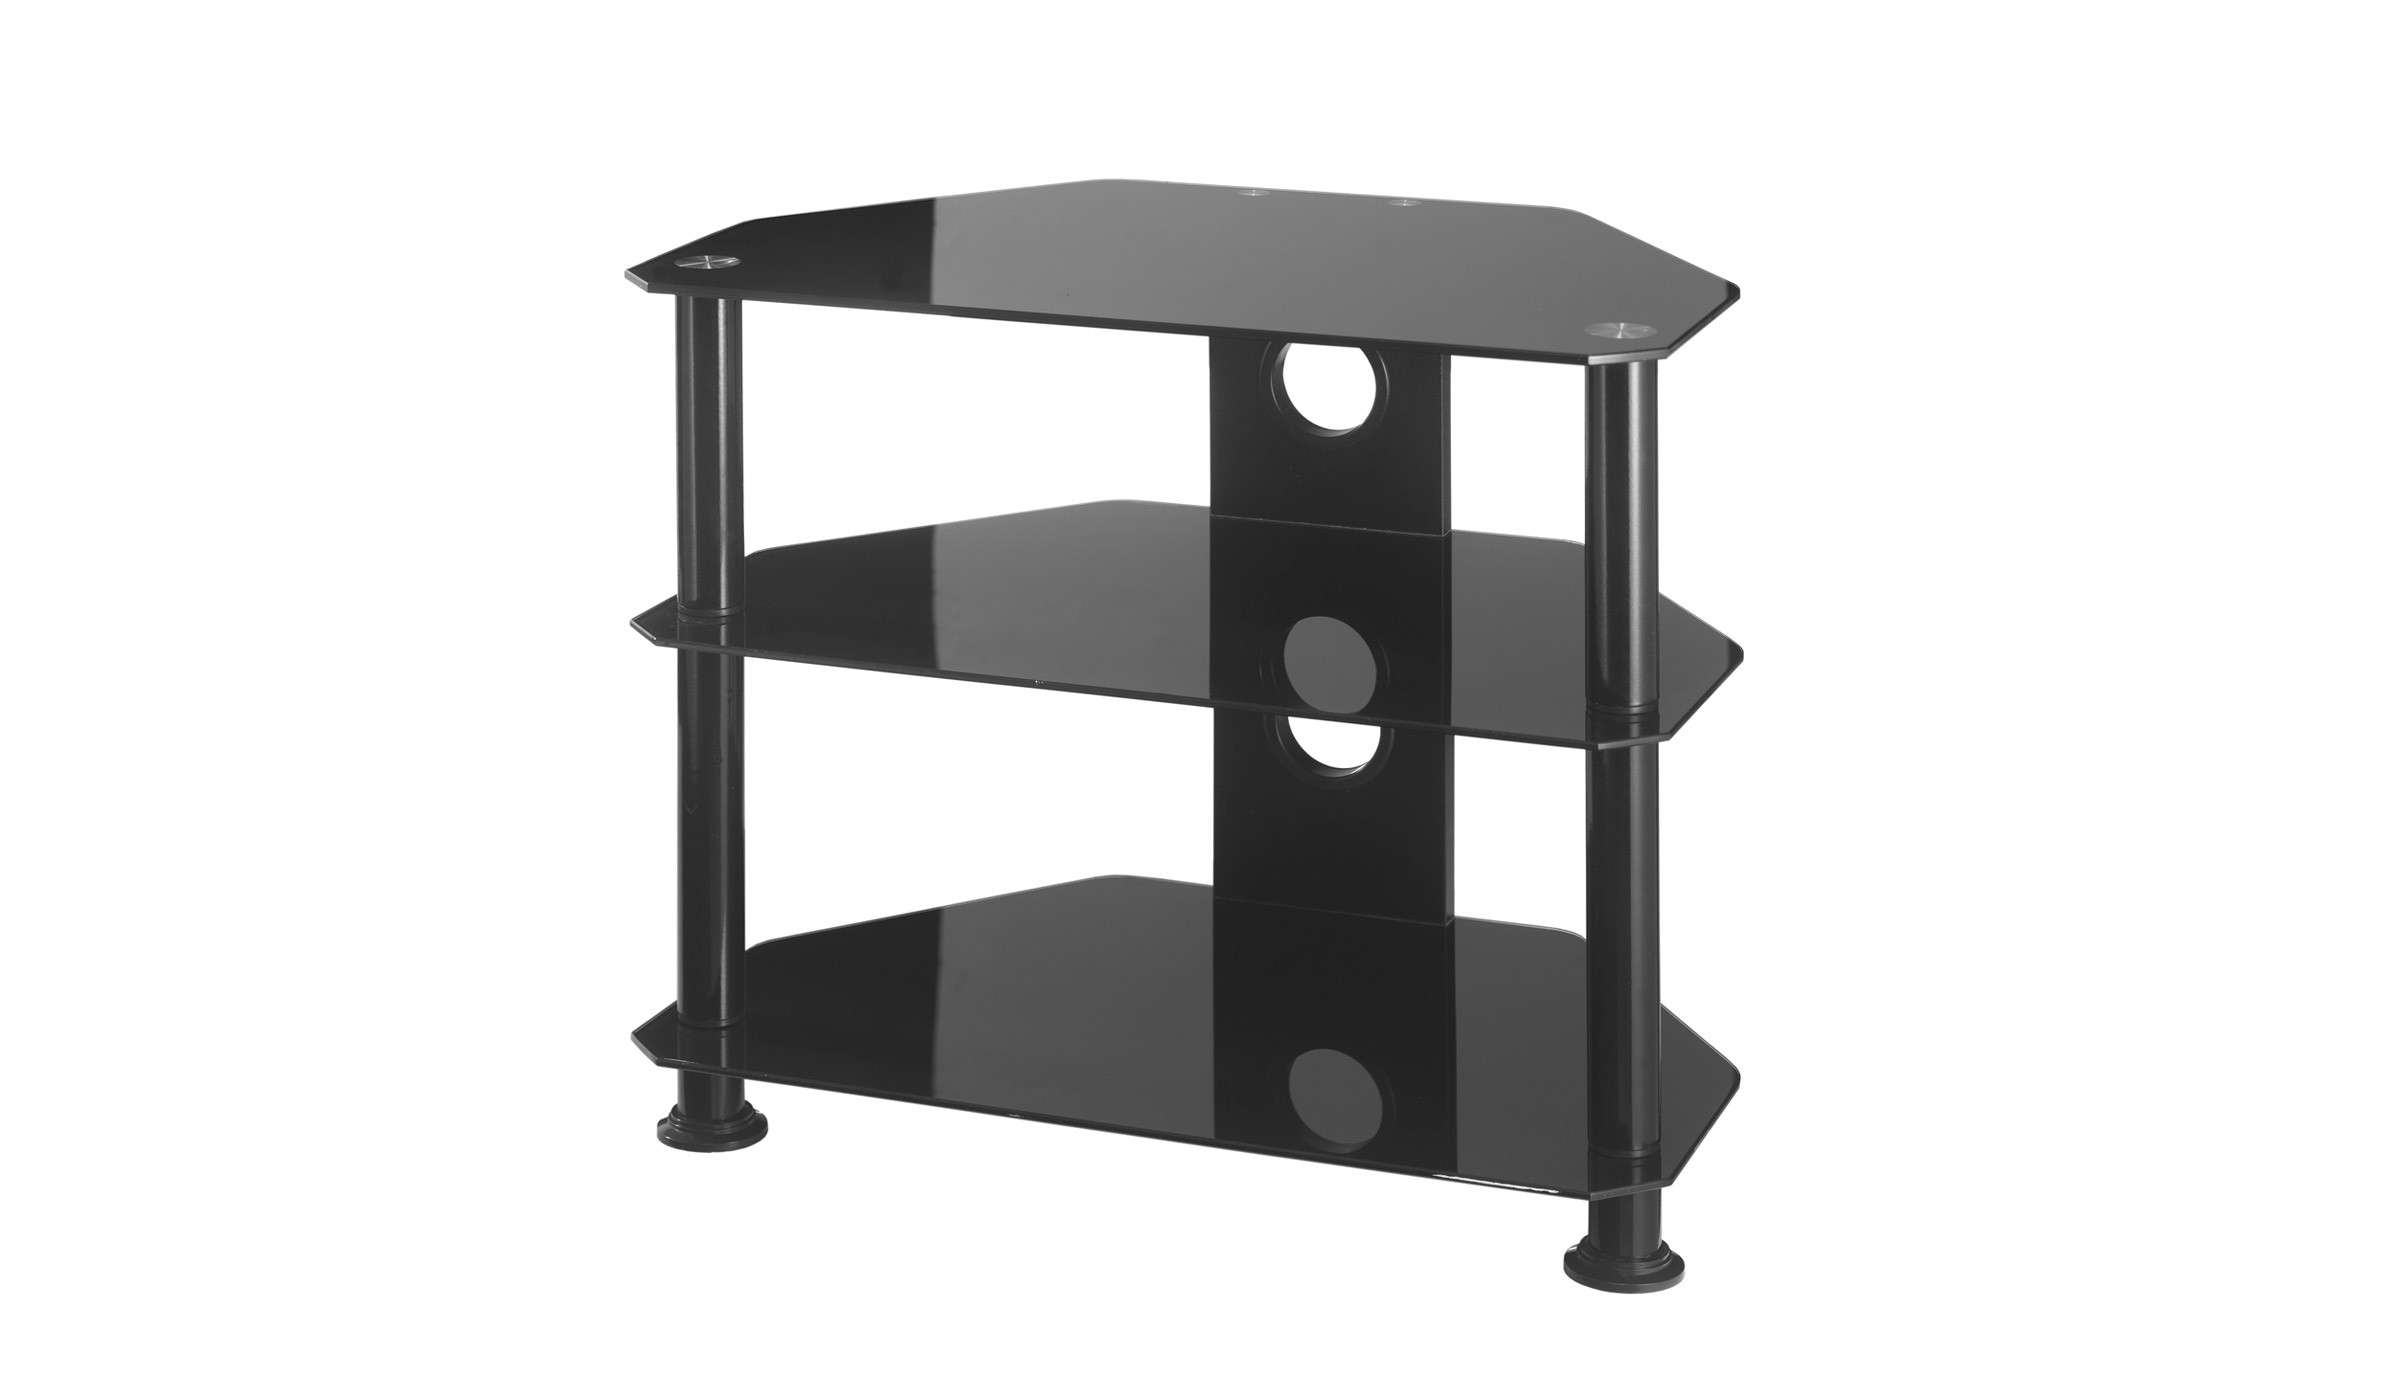 Small Glass Corner Tv Stand Up To 26 Inch Tv | Mmt Db600 Throughout Black Wood Corner Tv Stands (View 11 of 15)